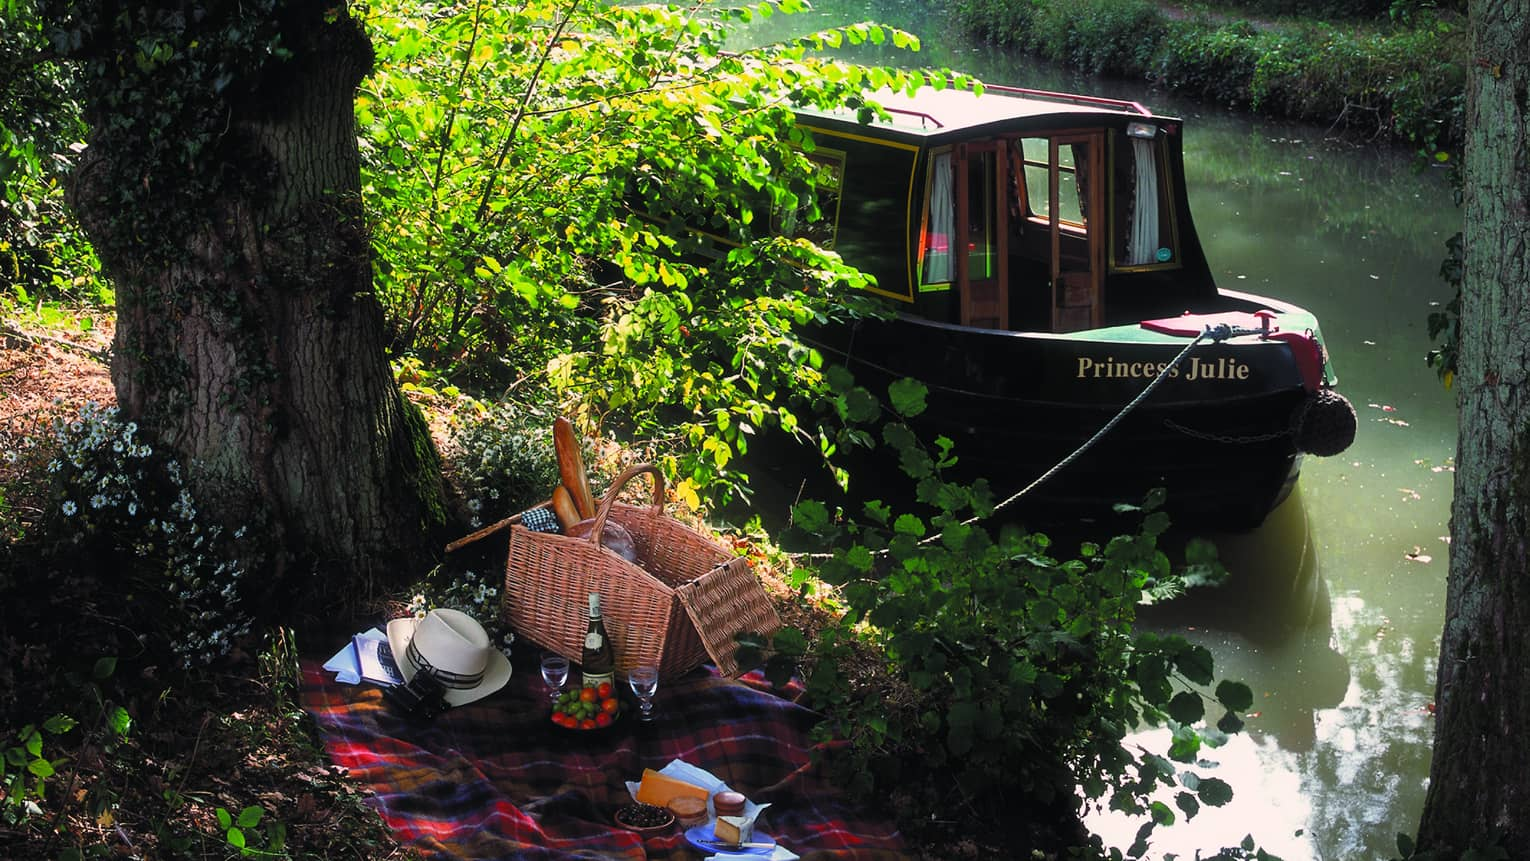 Picnic under tree by Princess Julie private canal boat parked at riverbank